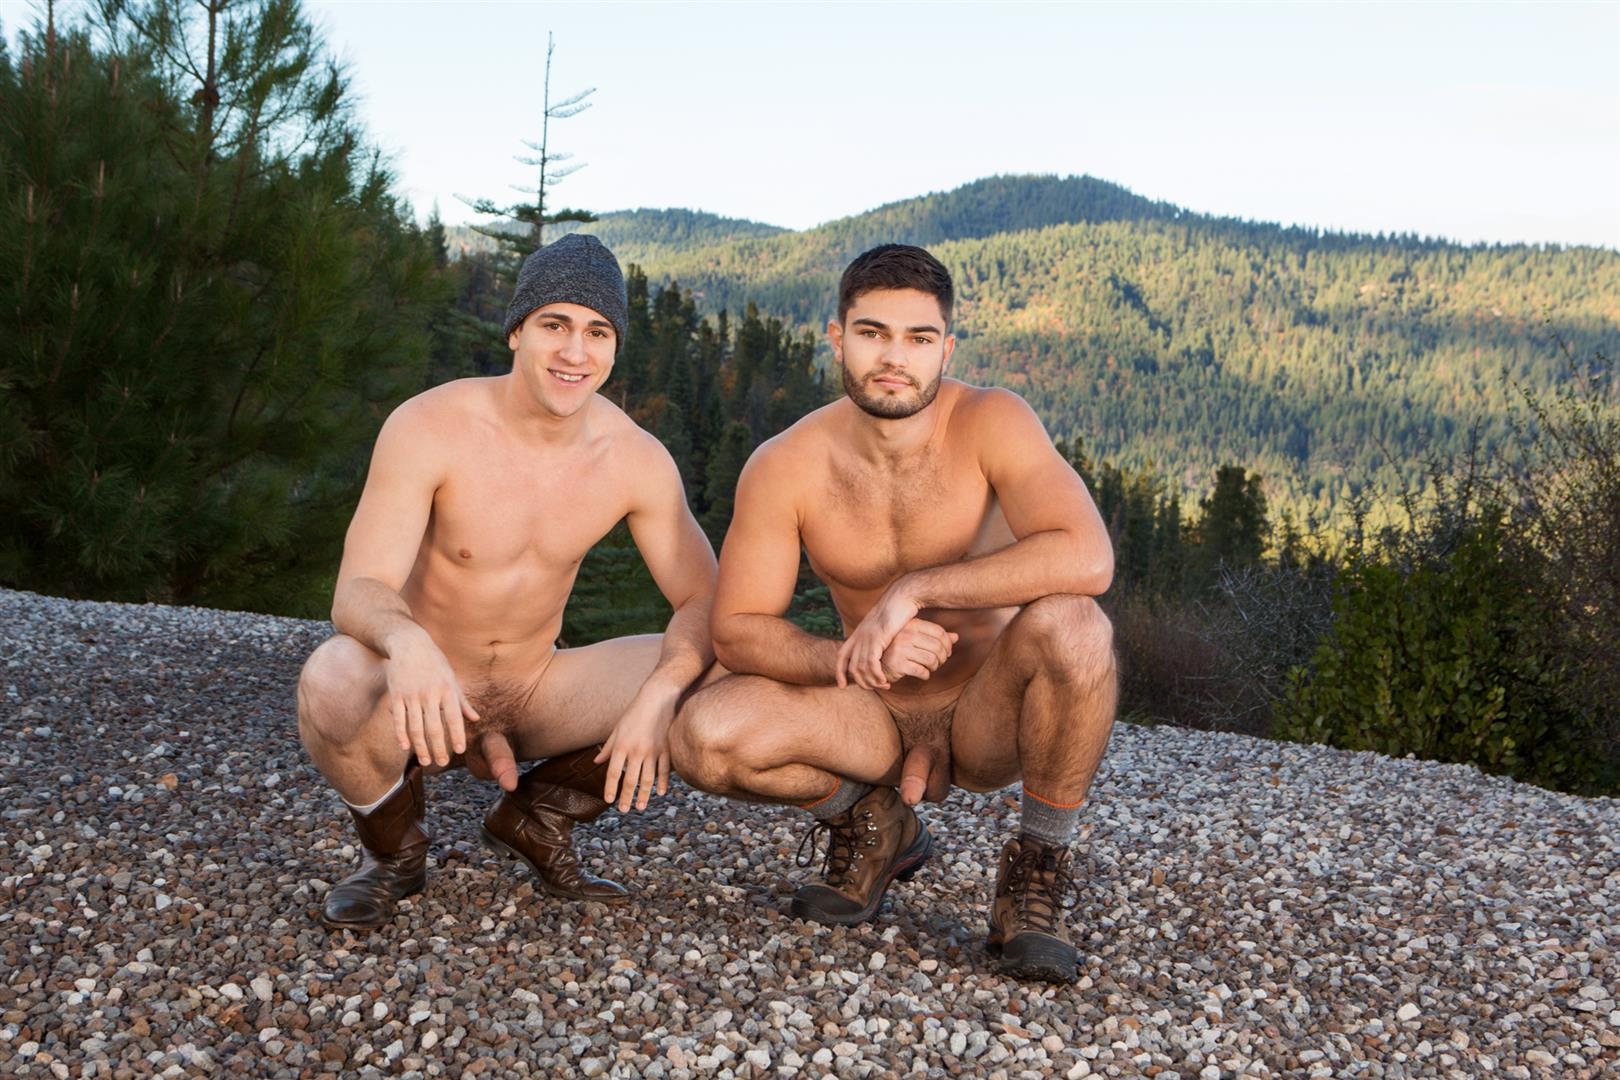 Sean-Cody-Winter-Getaway-Day-3-Big-Dick-Hunks-Fucking-Bareback-Amateur-Gay-Porn-07 Sean Cody Takes The Boys On A 8-Day Bareback Winter Getaway